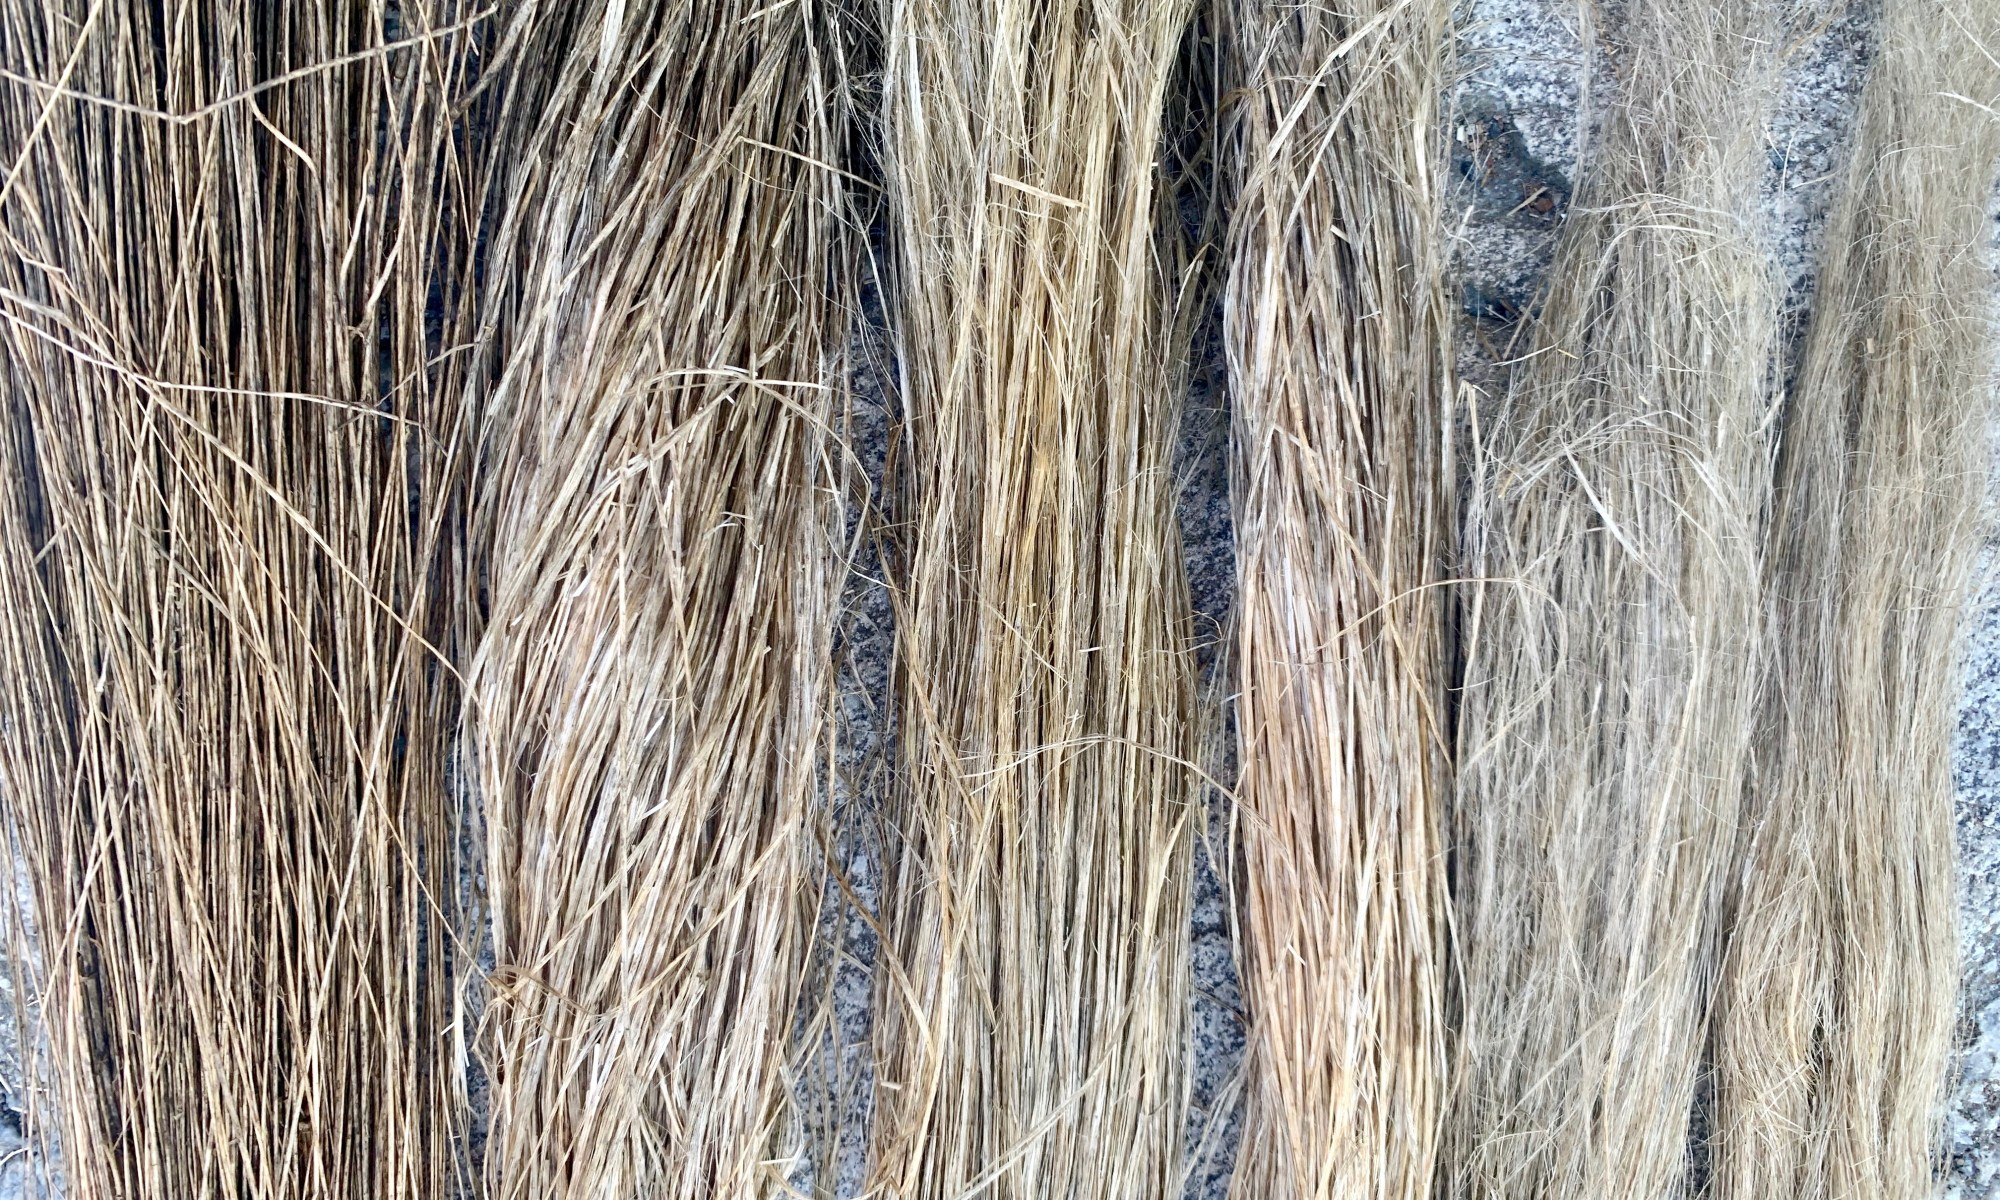 Six stages of processed flax. The fibers get increasingly finer and cleaner.